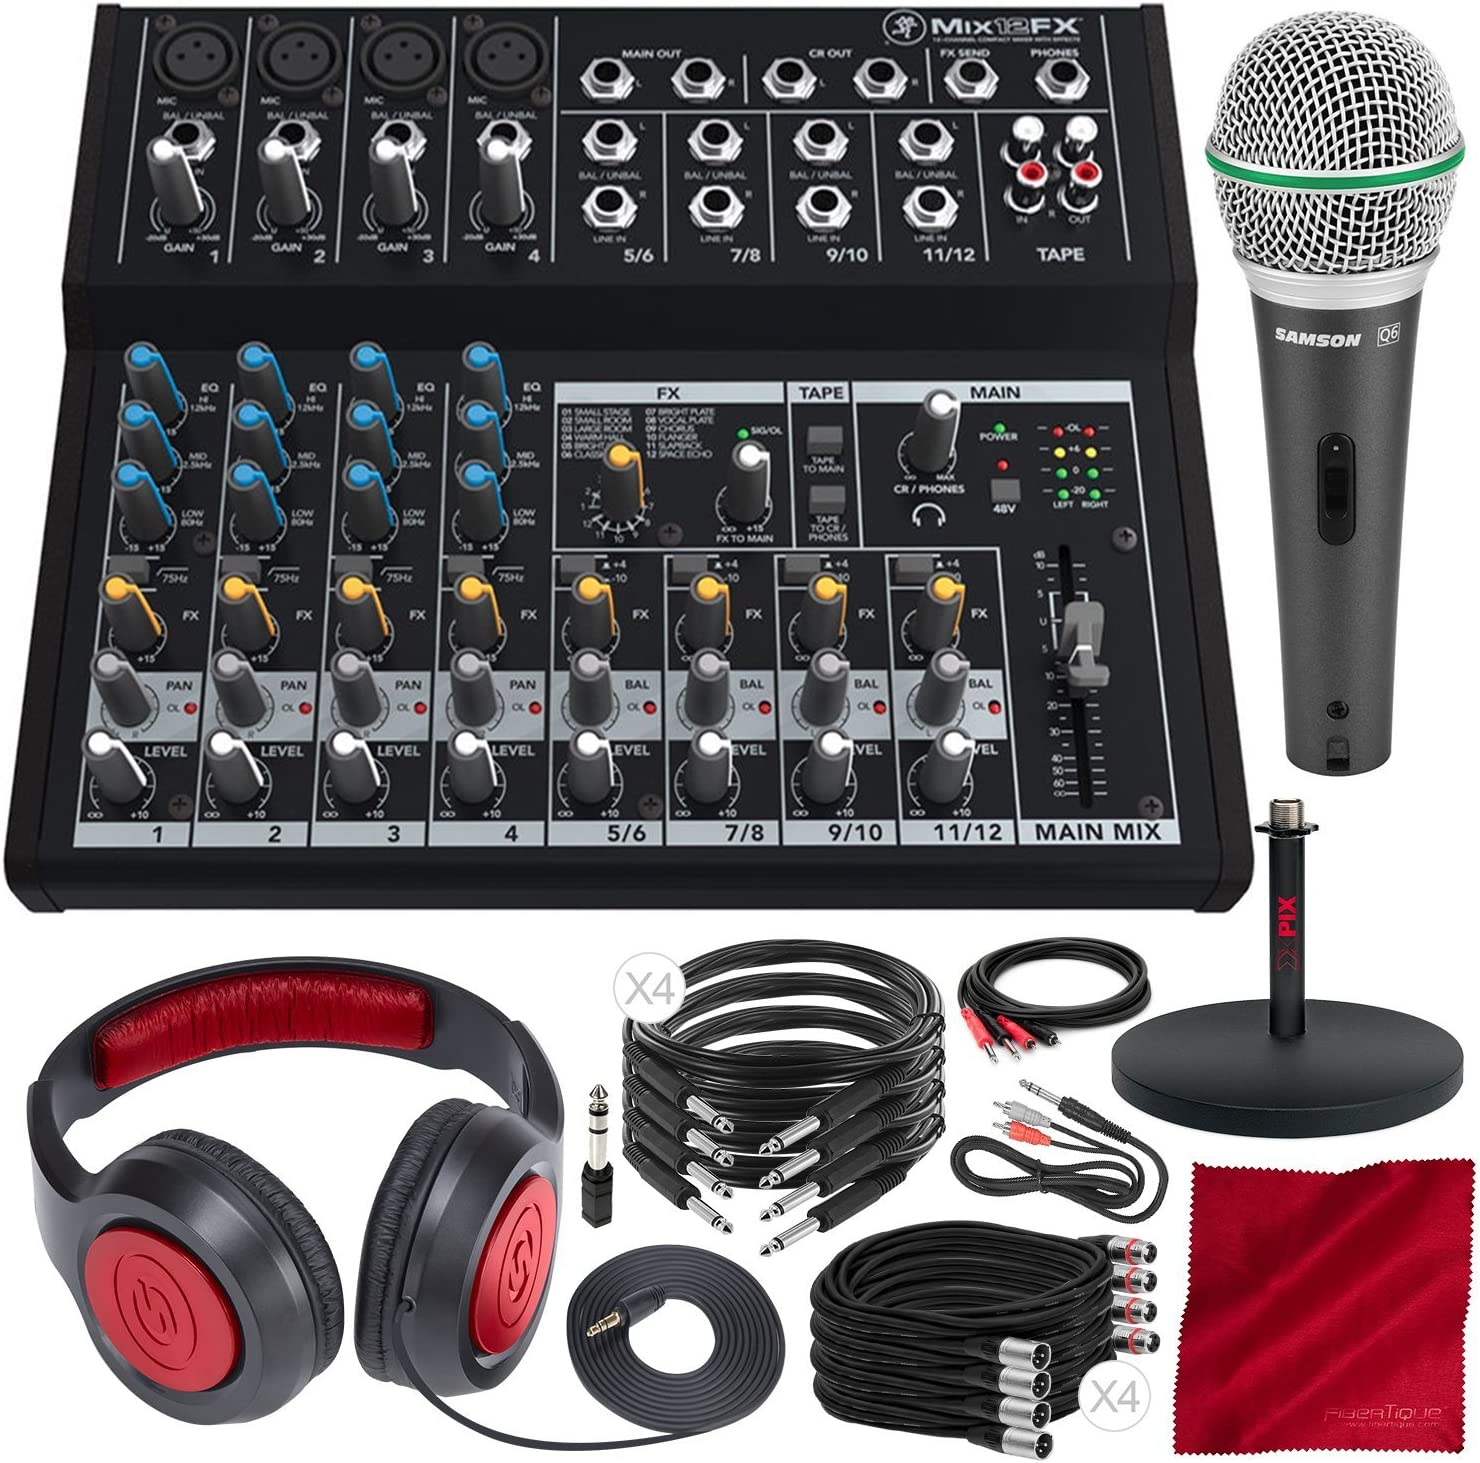 Mackie Mix Series Mix12FX 12-Channel Compact Mixer and Premium Bundle with Dynamic Microphone + Xpix Desktop Studio Mic Stand + Headphones + More